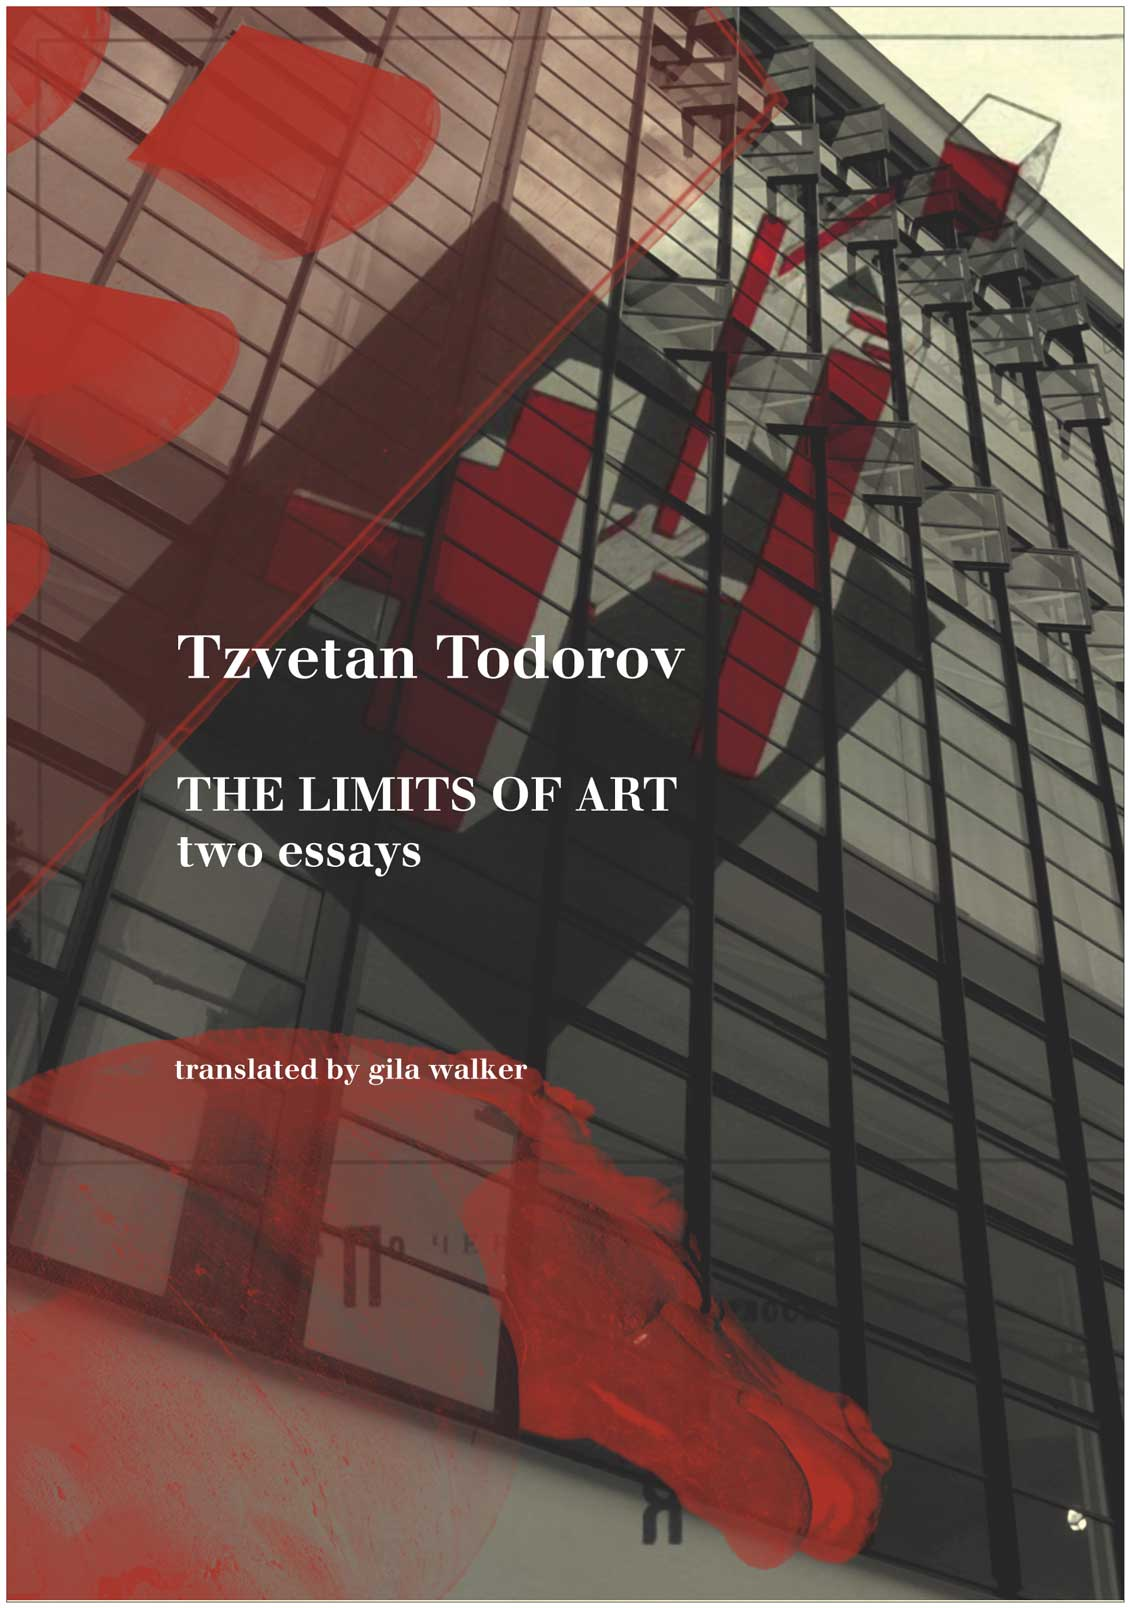 The Limits of Art: Two Essays by Tzvetan Todorov | Seagull Books